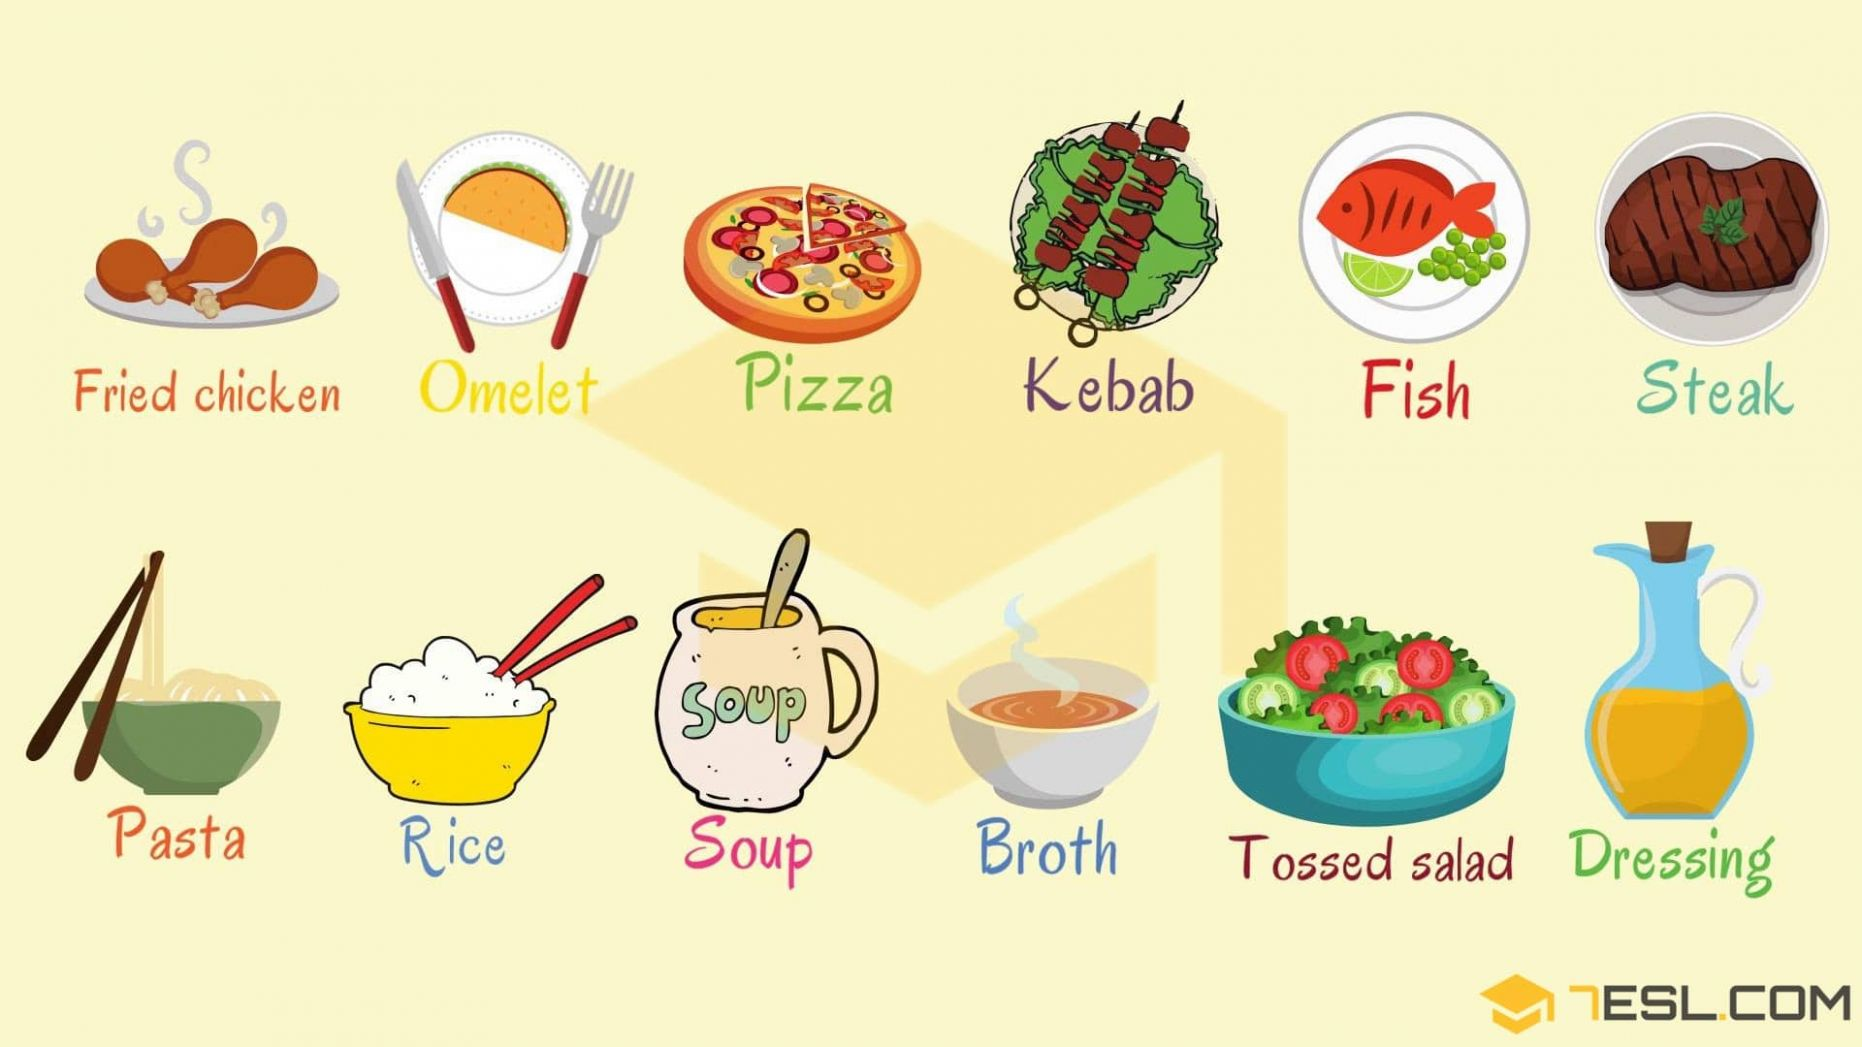 Dinner Food List: Useful List Of Dinner Foods With Pictures - 8 E S L